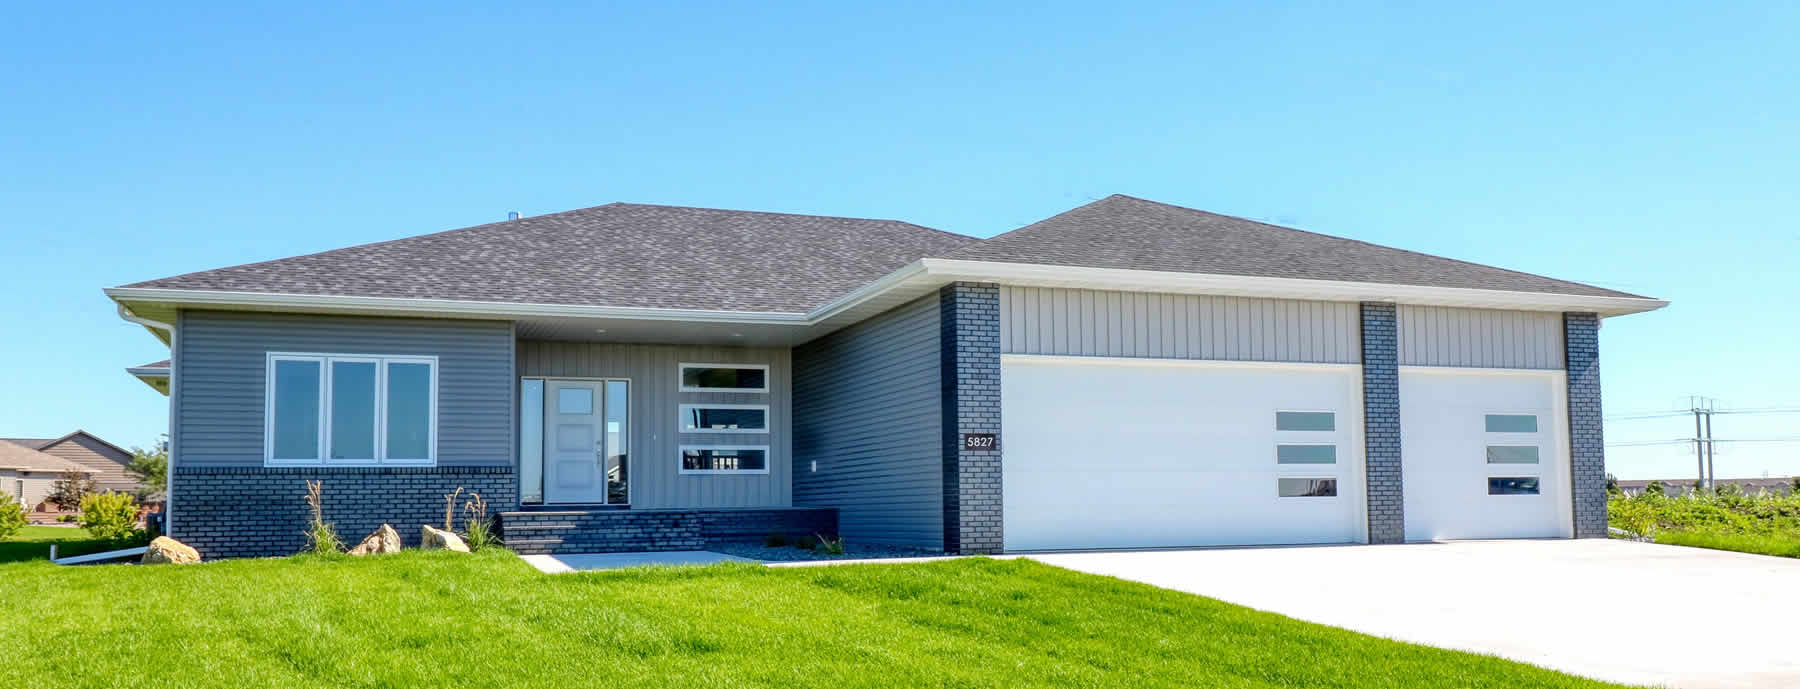 Equity Home Builders, LLC - Home 1